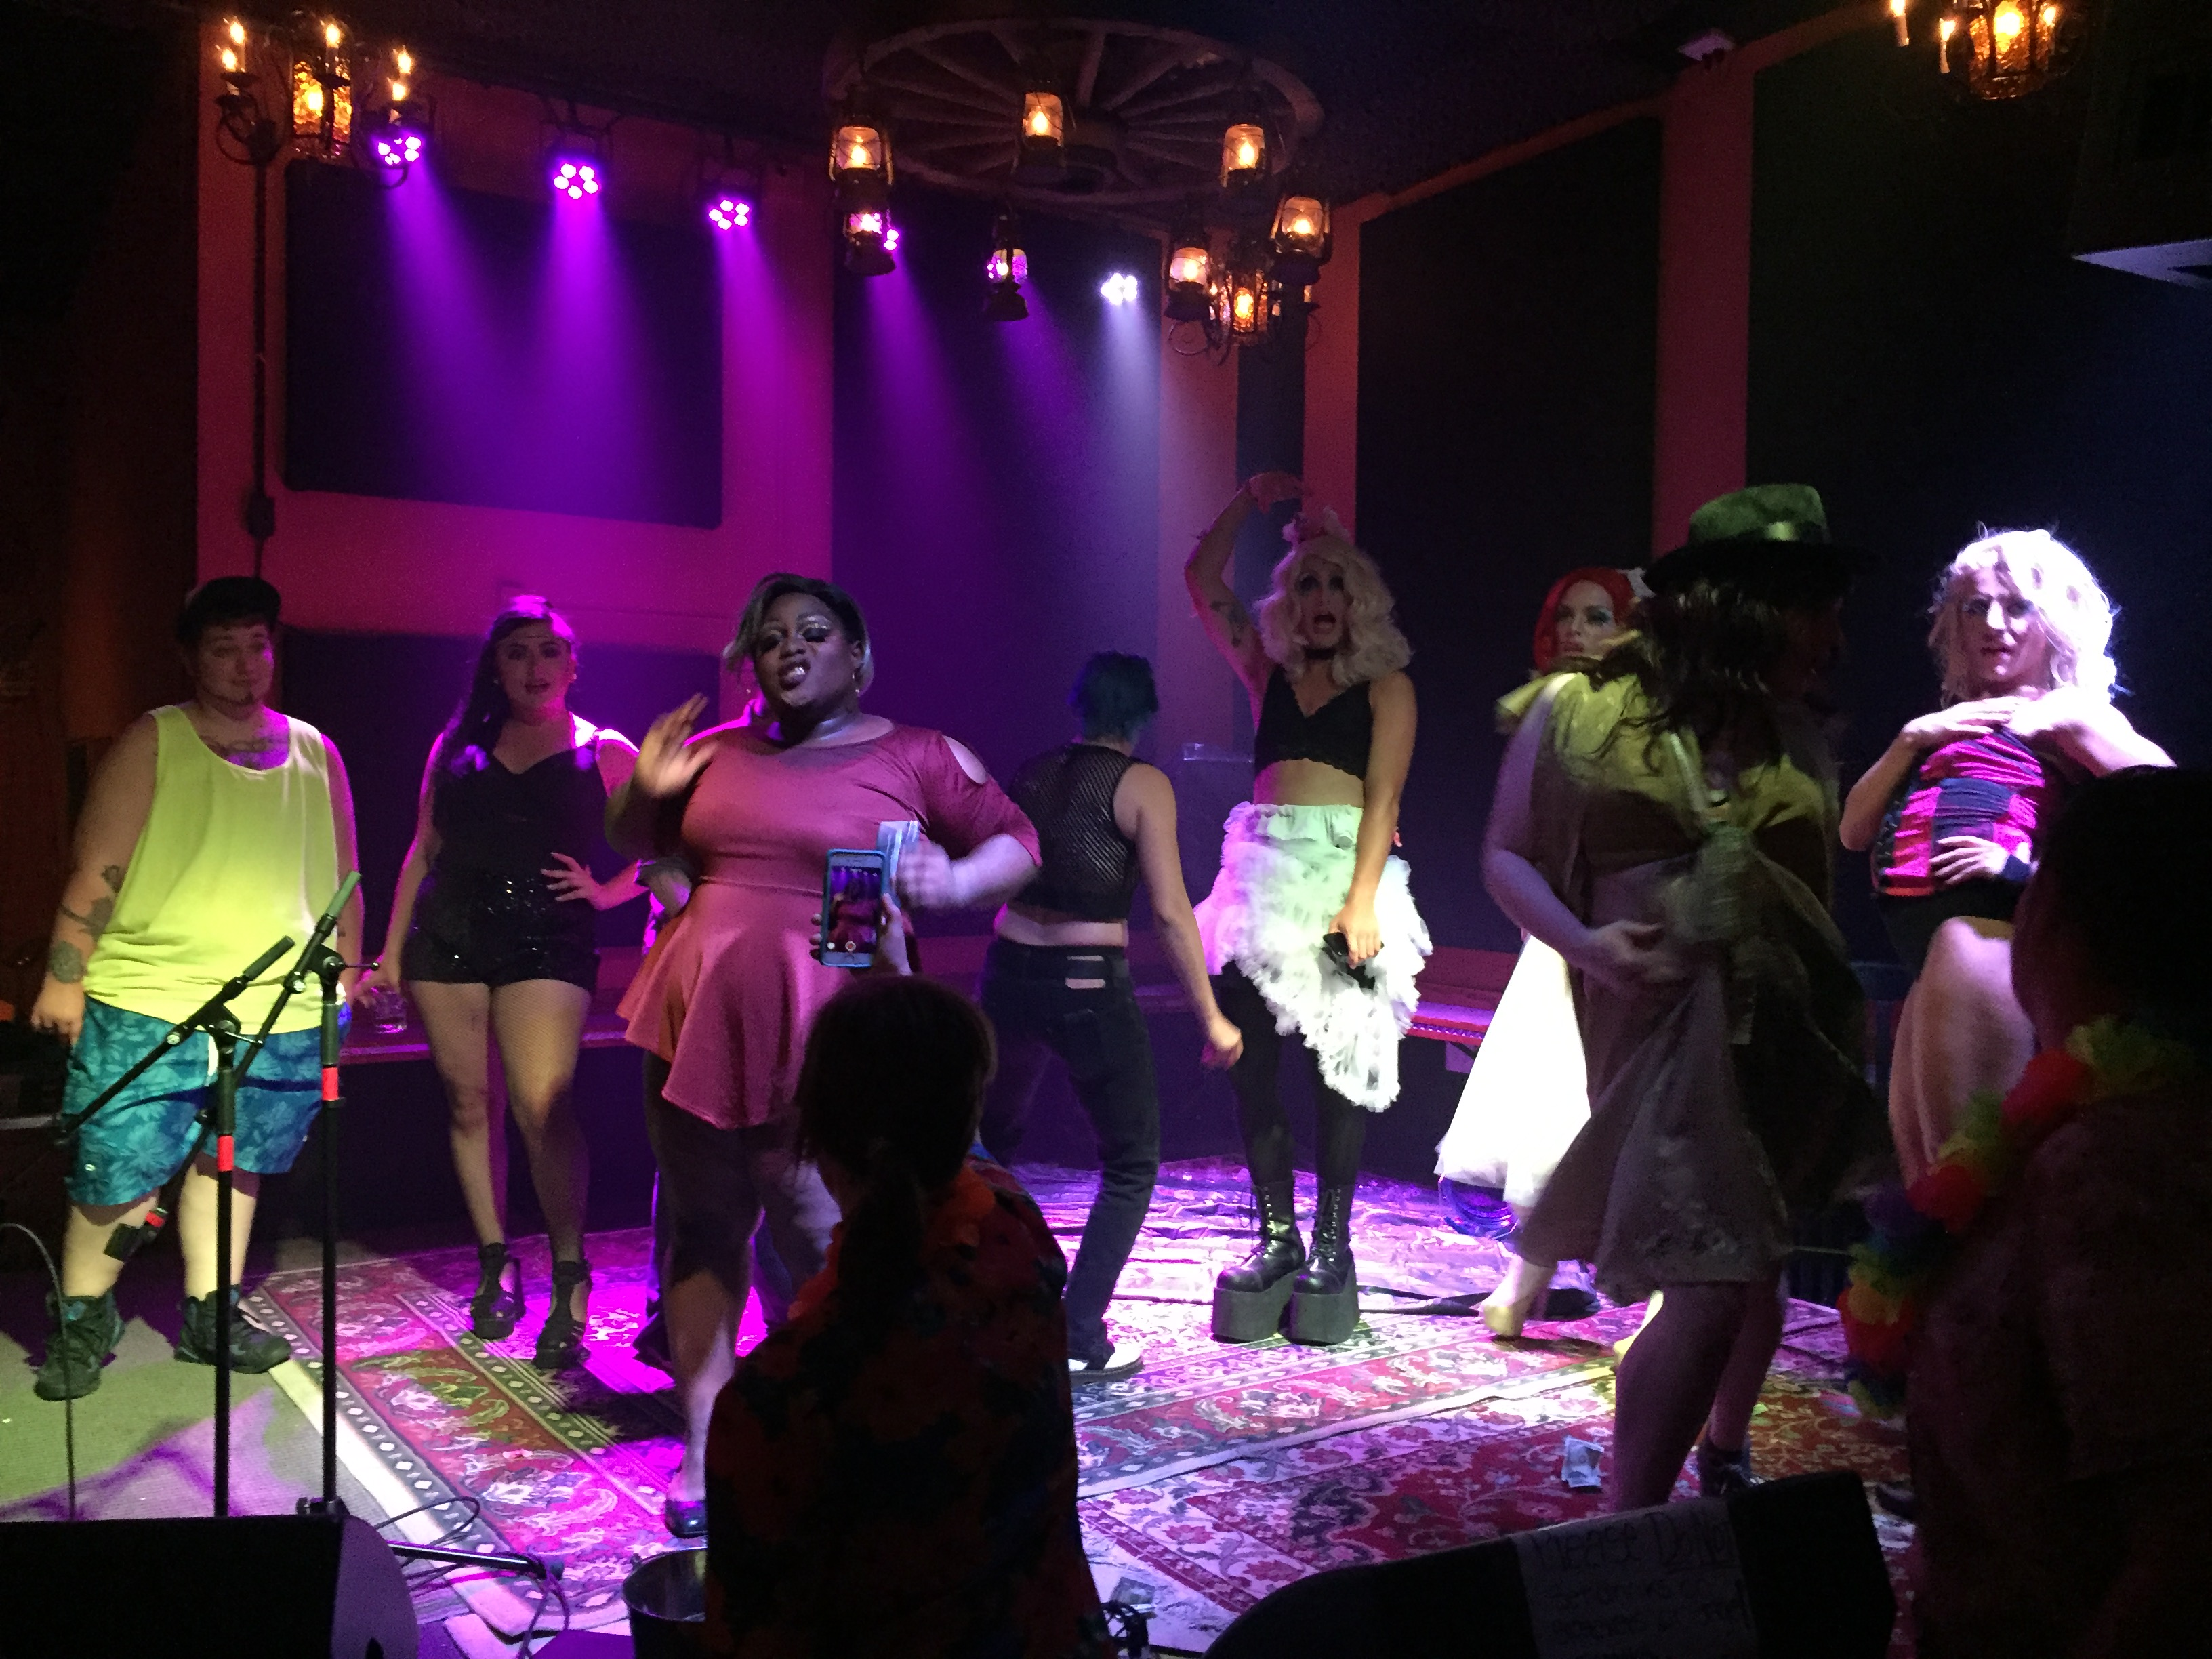 house of merlot drag night show whiskey tango burlesque queens lgbt gay ithaca the range